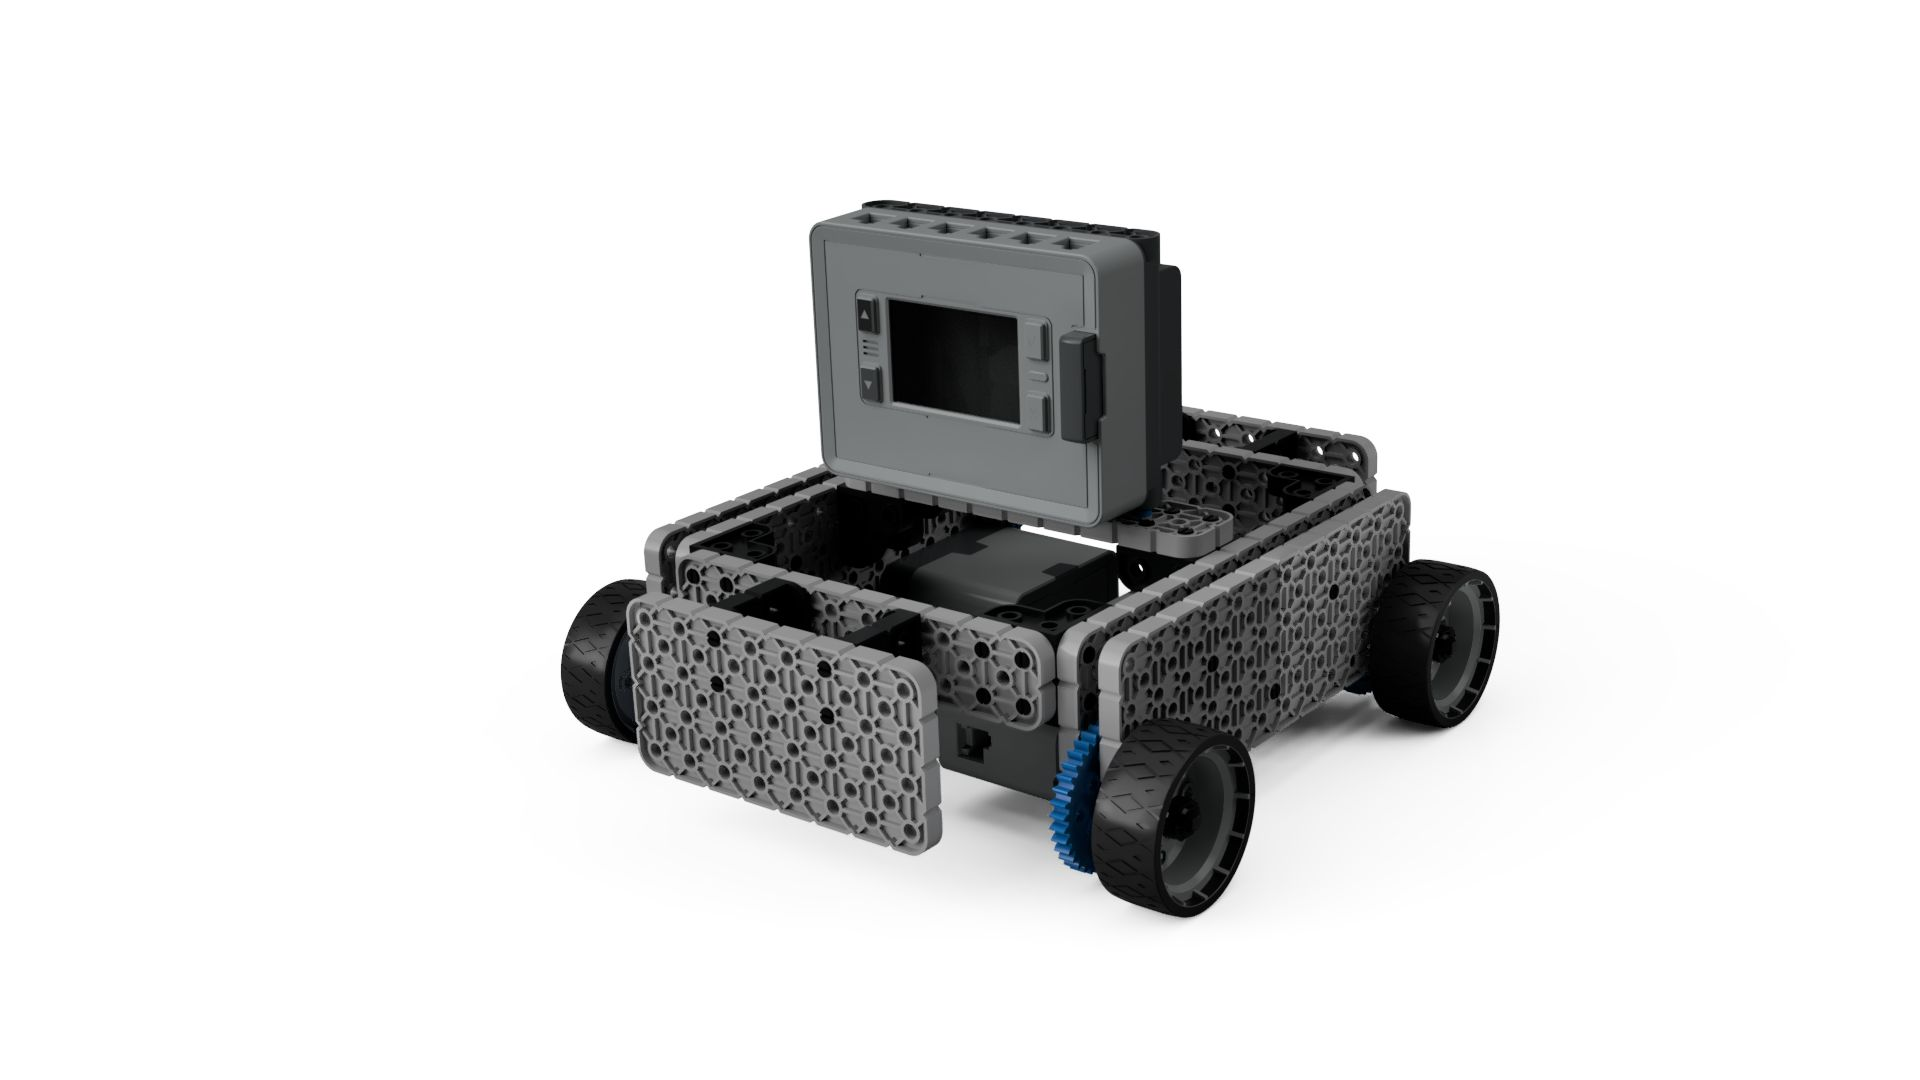 The-power-turtle-drivetrain---vex-iq-robotics-2019-may-25-06-09-25pm-000-customizedview24974077248-png-3500-3500